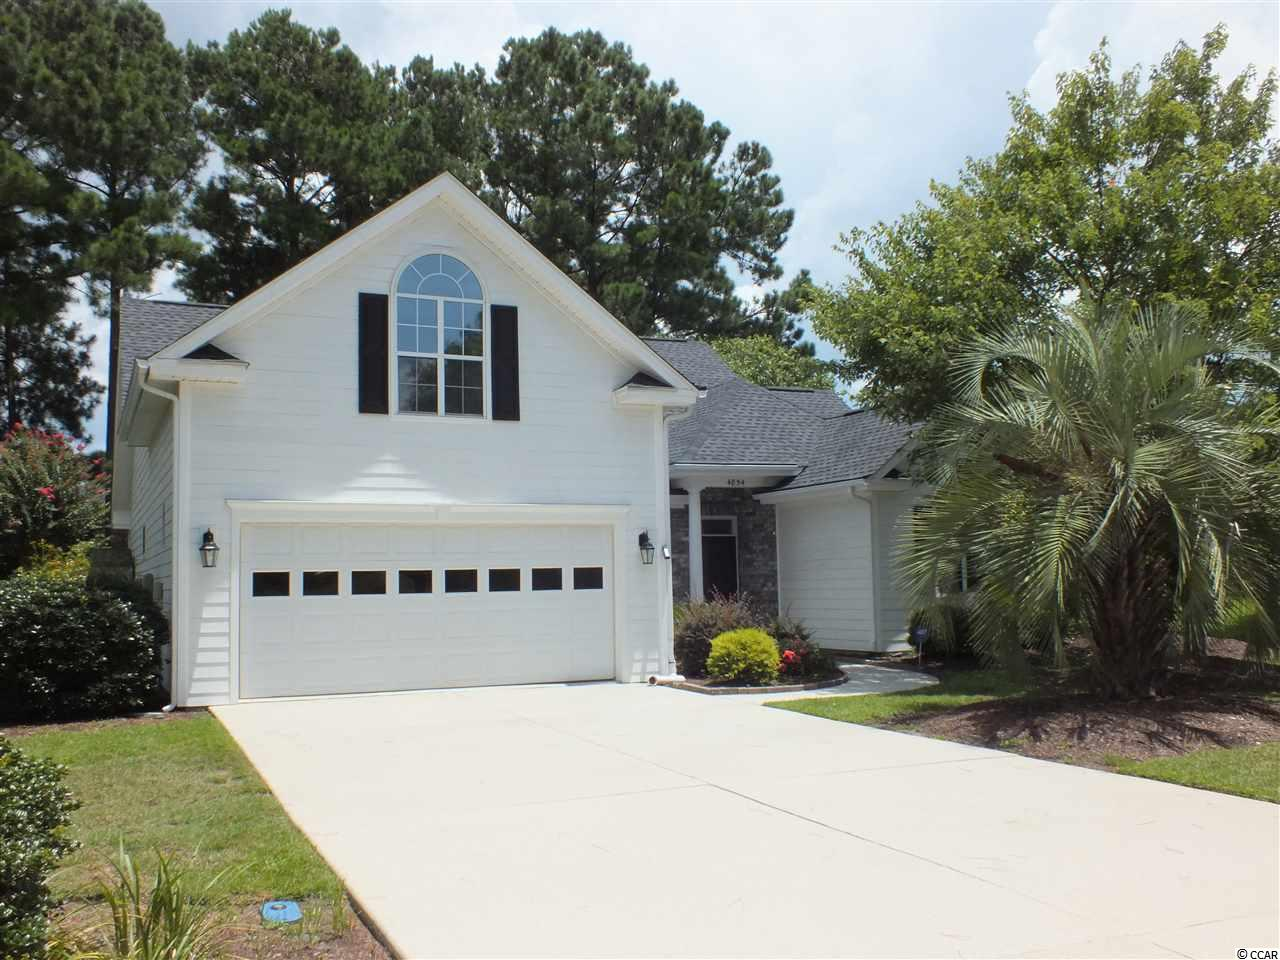 """This absolutely beautiful 4 BD, 2 BA home with great curb appeal, is located on a large lot in the much desired, GOLF community of Waterford Plantation. Included in this remarkable home is a formal dining room, Carolina Room and Bonus Room with plenty of storage. Kitchen comes equipped with 42"""" cabinets with crown moldings, Granite counters. Master bedroom on the first floor includes a large walk-in closet and the bath has a shower, whirlpool tub,  sink and a vanity. Two other bedrooms are located on the first floor. A large Carolina Room with French doors is in the back of the house overlooking a patio, pond, and fenced in backyard.  The Bonus Room on the 2nd floor is setup for the """"The Man Cave"""" or """"Craft Room"""", or forth Bedroom with plenty of storage. Ceiling fans are located in each bedroom and also the Carolina Room, Living room, and Bonus Room. Gorgeous hardwood floors enhance the living room, dining room. study and kitchen. Tiled floors are in the laundry room, bathrooms and Carolina Room. Plantation Shutters in the Carolina Room enhance the look. Each bedroom is carpeted.  Home has been meticulously maintained and ready to move in. Many amenities await you in this very friendly, active community which includes a Jr. Olympic sized swimming pool, cabana, fitness center, tennis courts, basketball, volleyball, playground, sidewalks and walking trails. The community with low HOA's is located in top-rated Carolina Forest school district and close to shopping, beach, theaters, hospital, post office, restaurants and all of the great things that Myrtle Beach has to offer. Measurements are approximate and must be verified by the buyer. This is definitely a must see home. Don't miss out on this one!"""